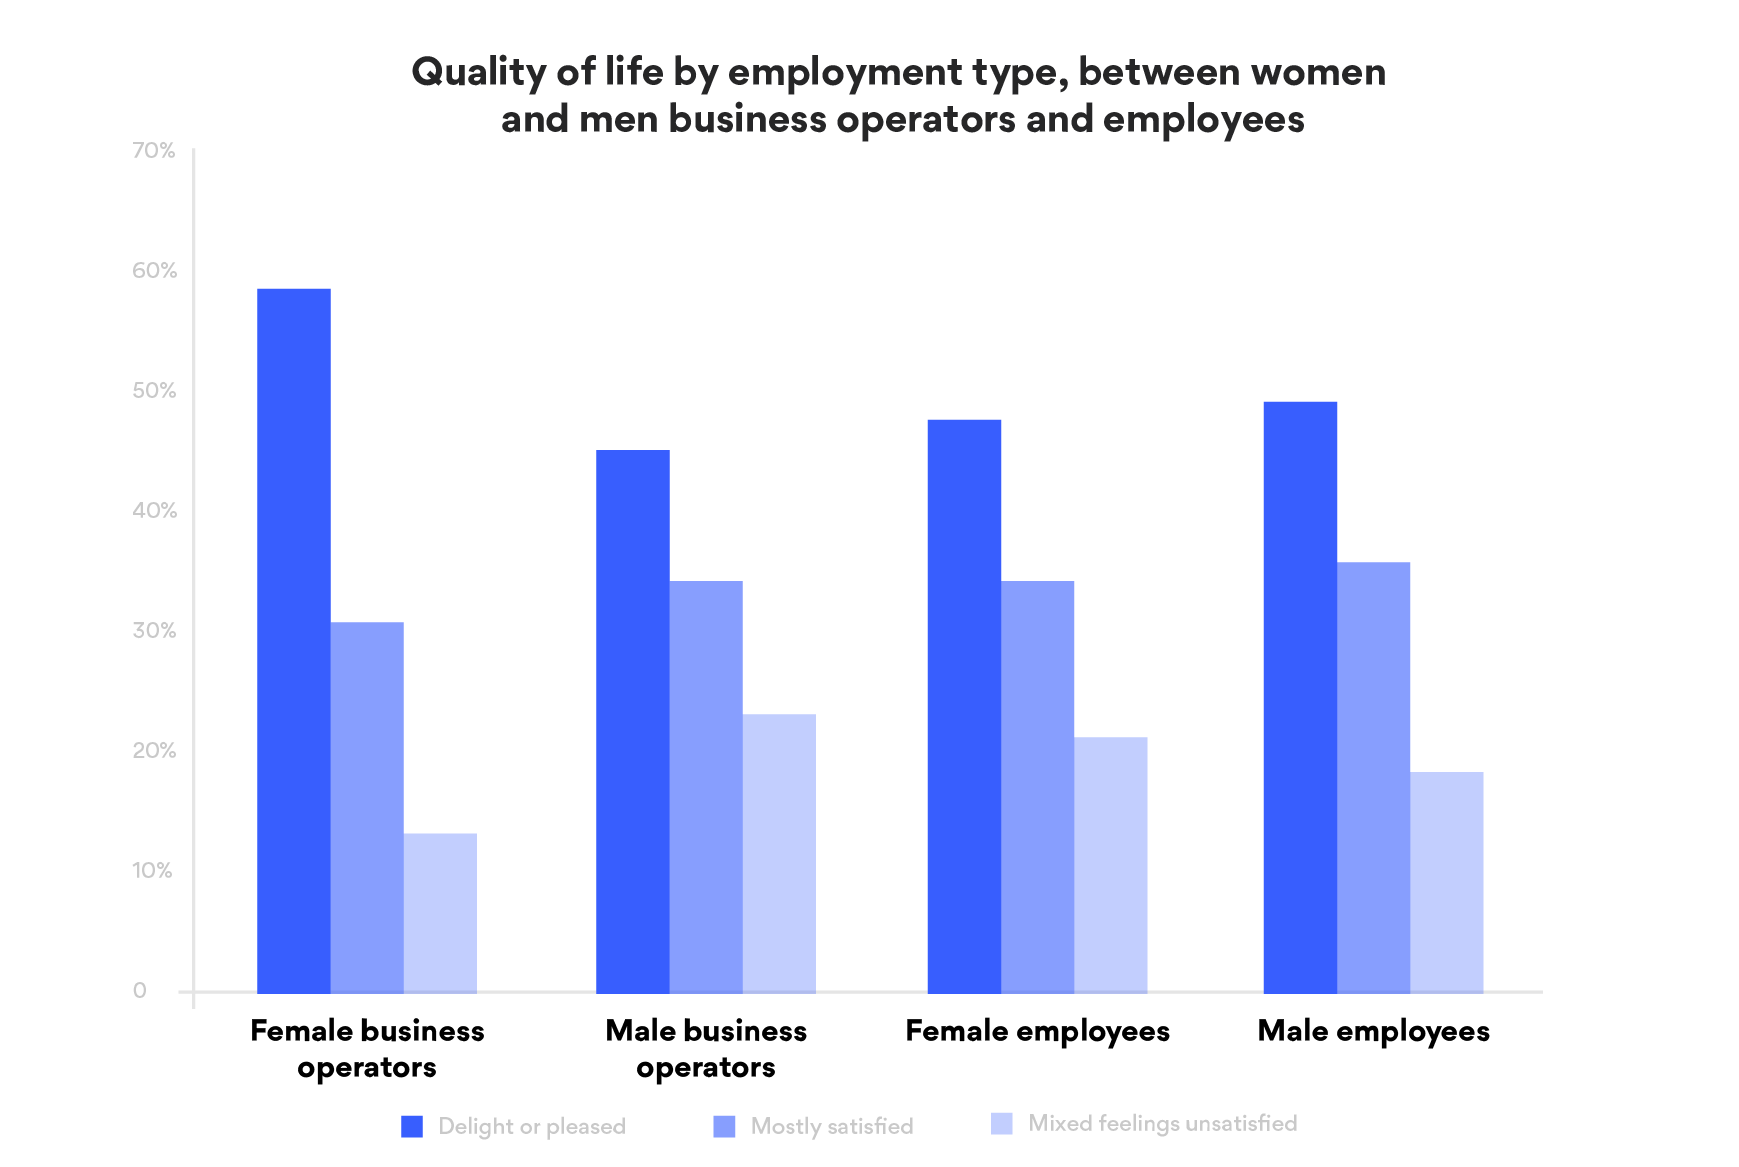 Women business operators have a higher level of satisfaction